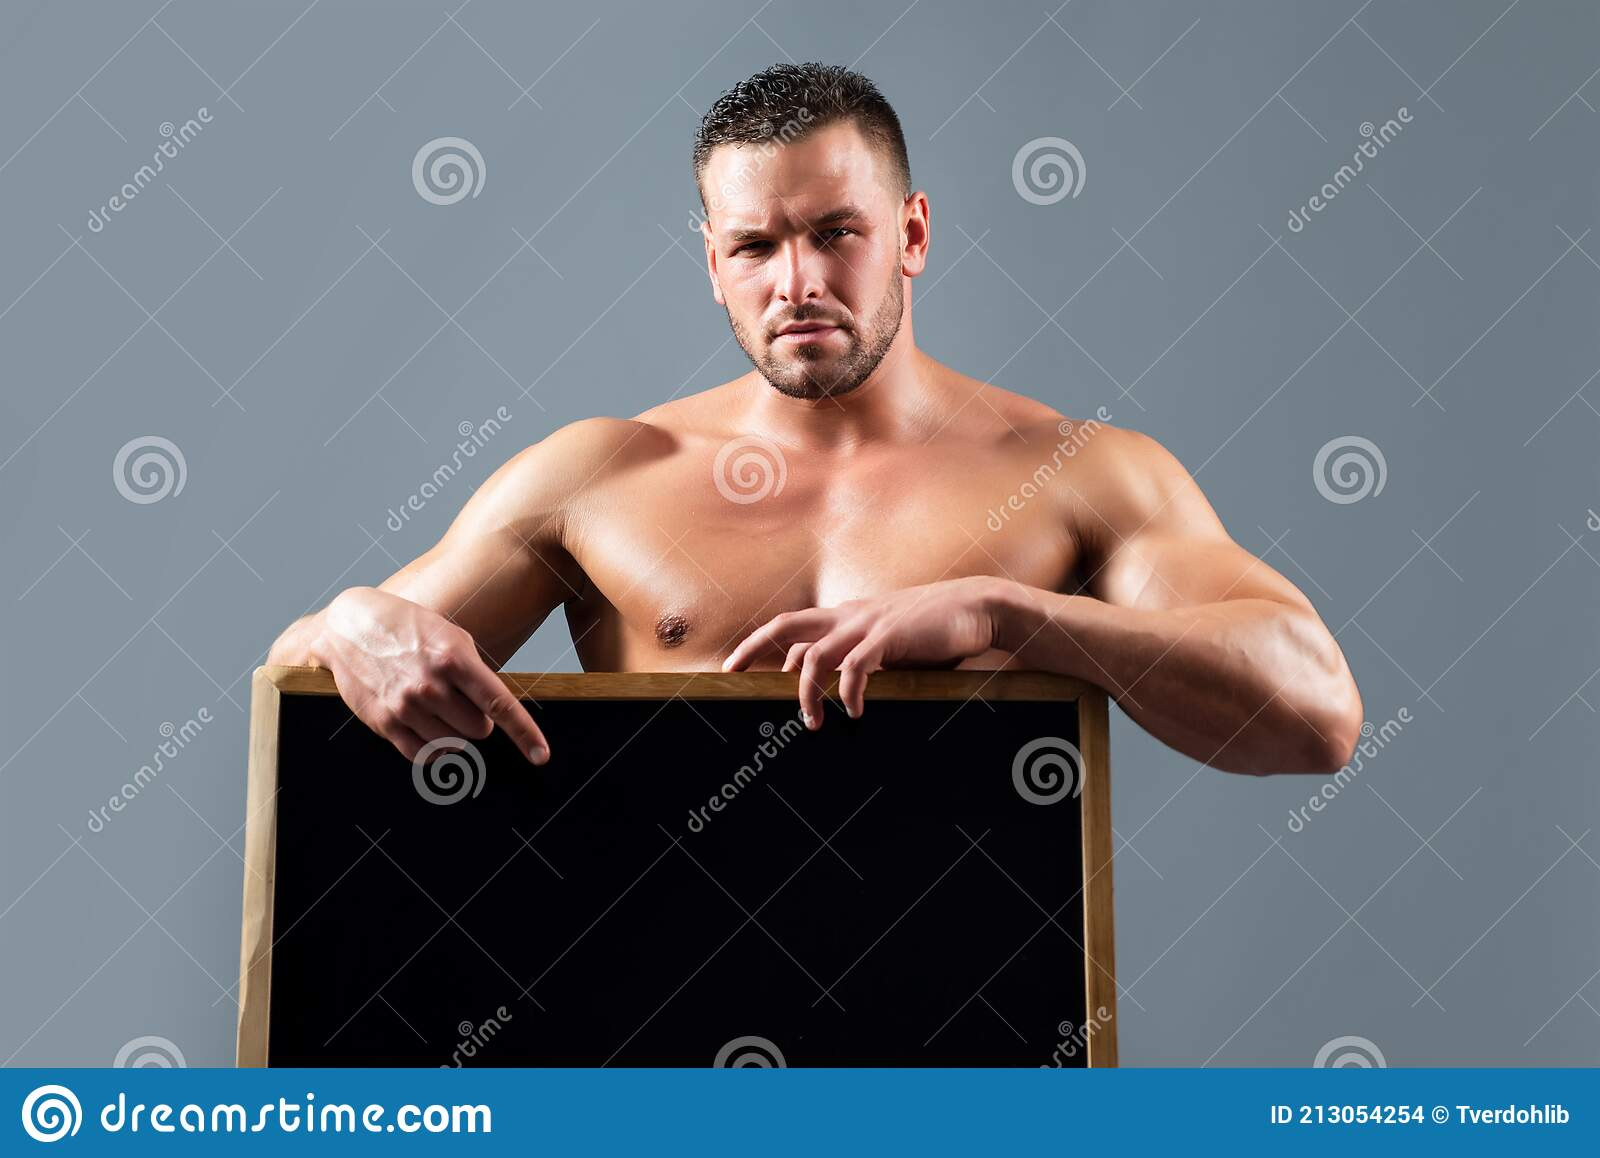 Bodybuilder With Blank White Poster Stock Photo - Download